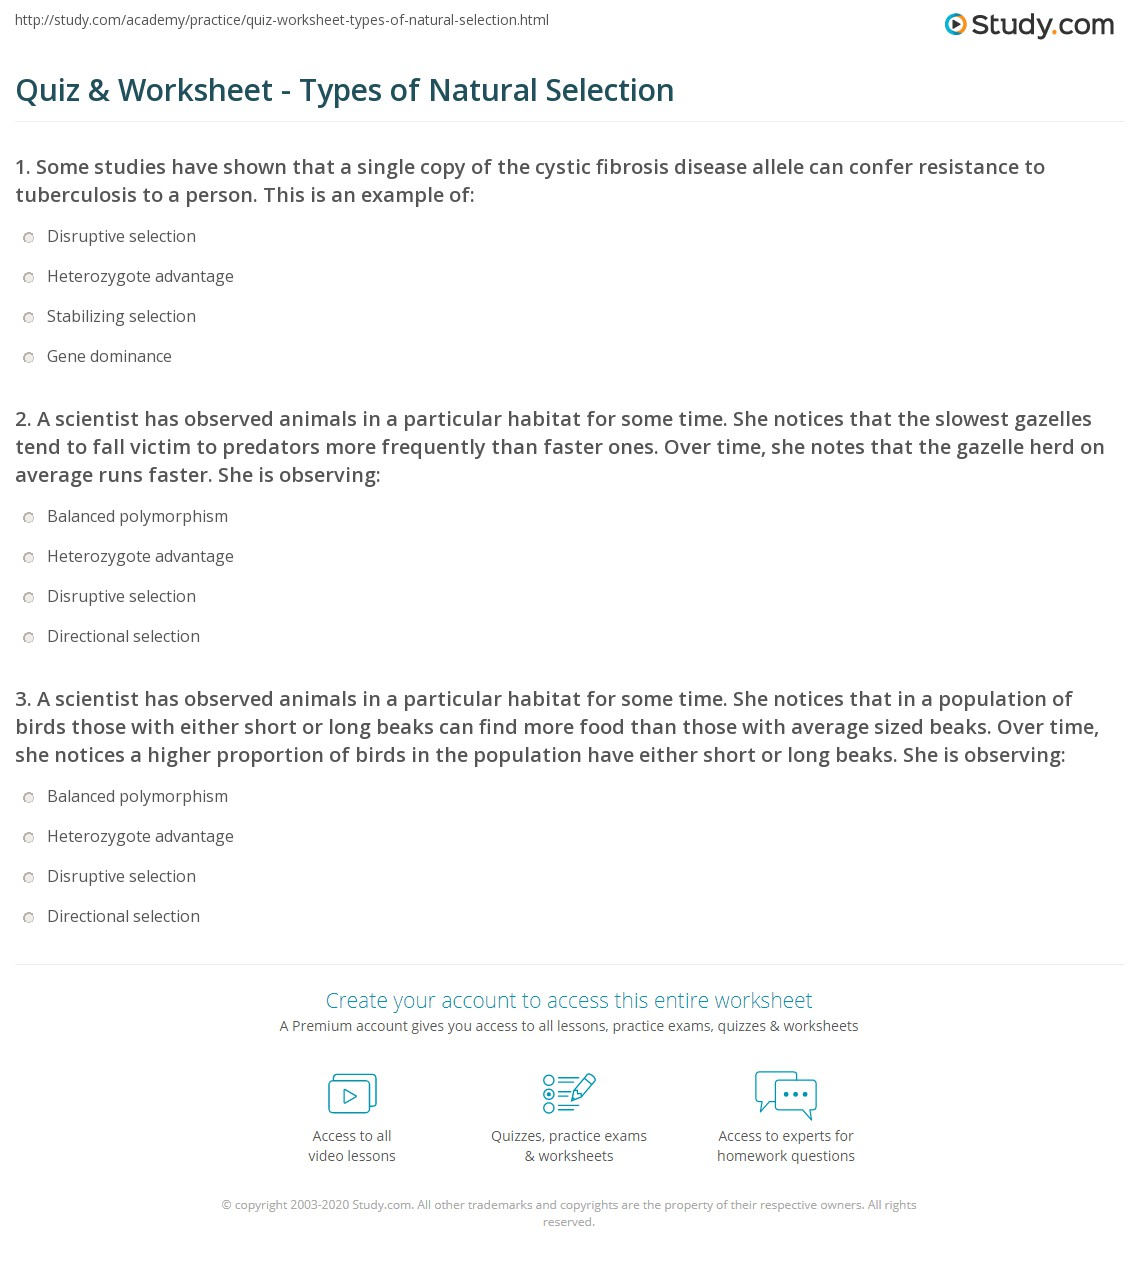 Quiz & Worksheet - Types of Natural Selection | Study.com